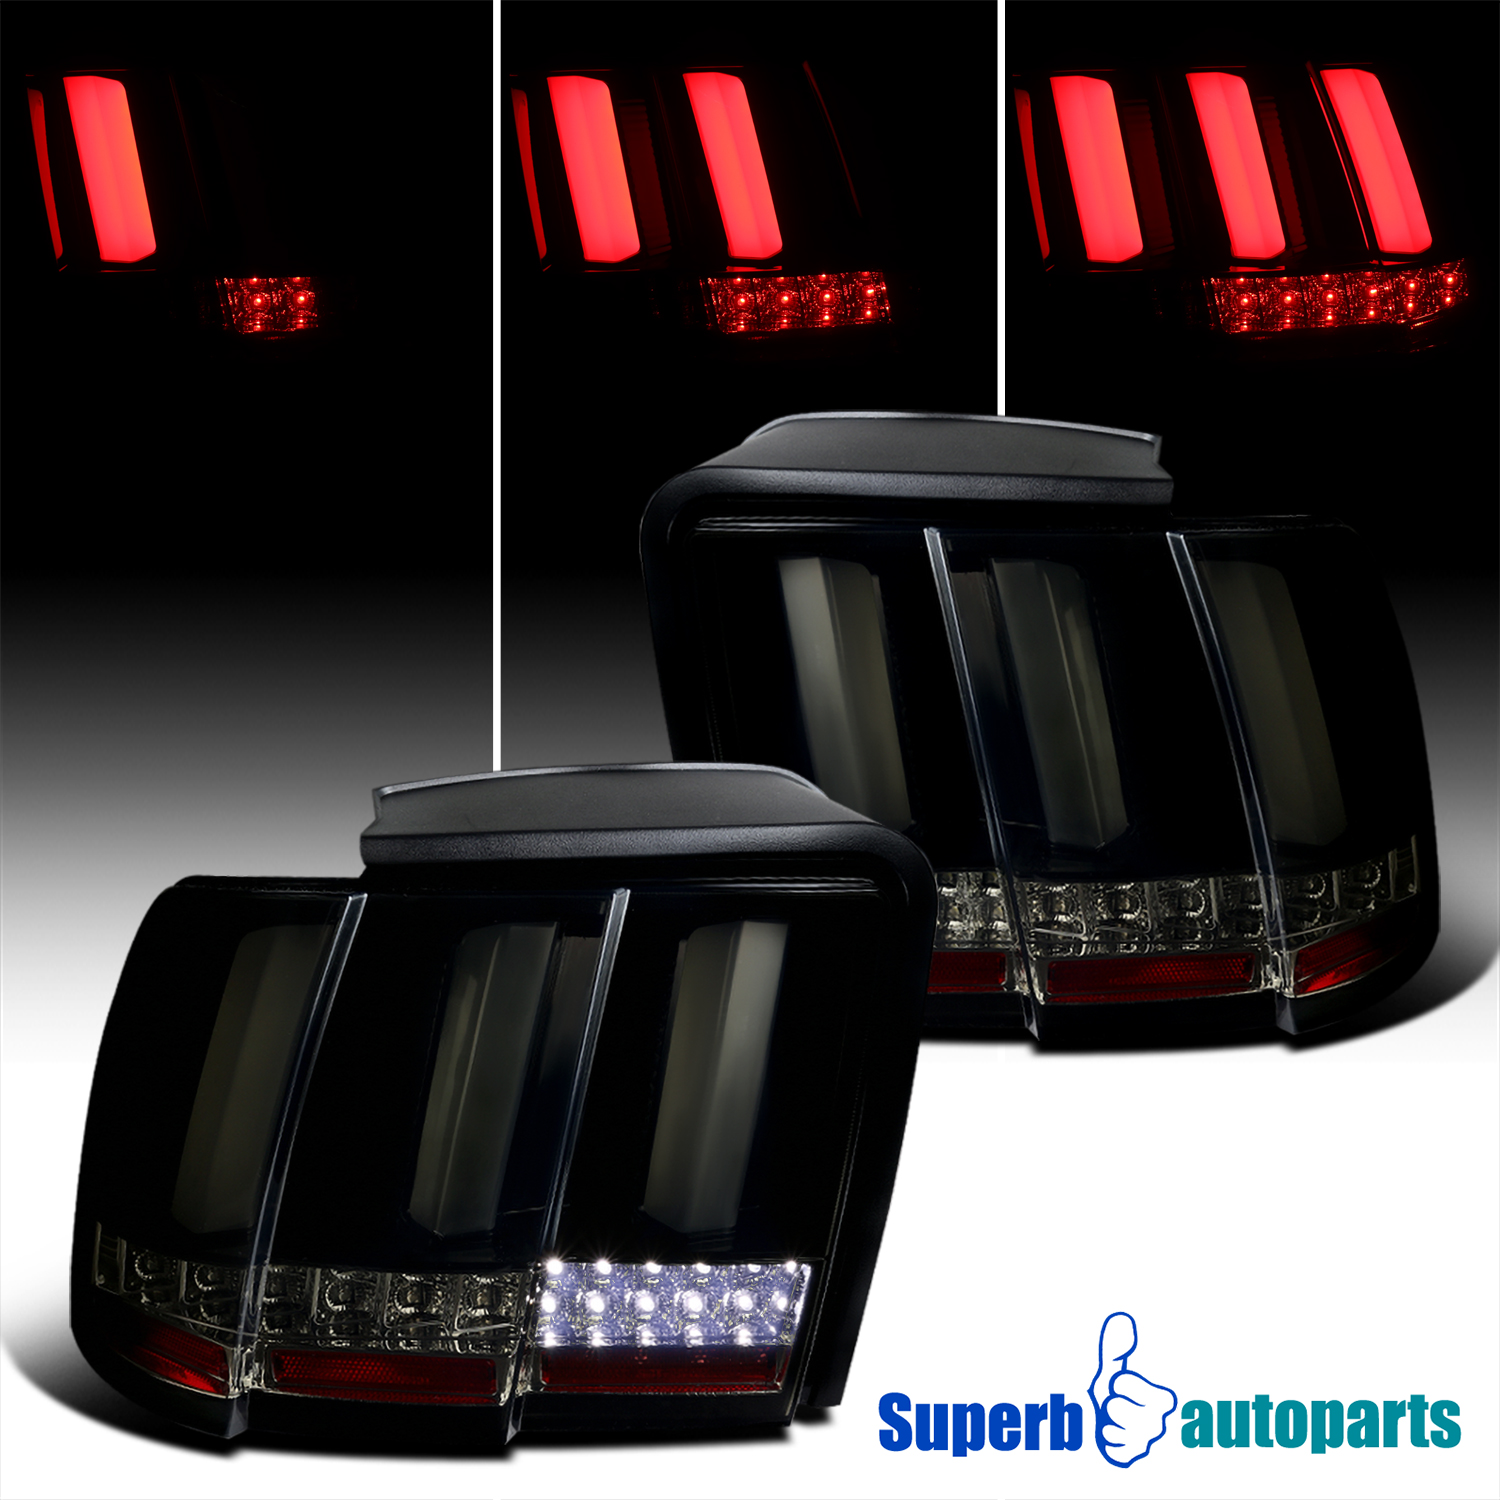 seq led 1999 2004 ford mustang sequential led tail lights. Black Bedroom Furniture Sets. Home Design Ideas